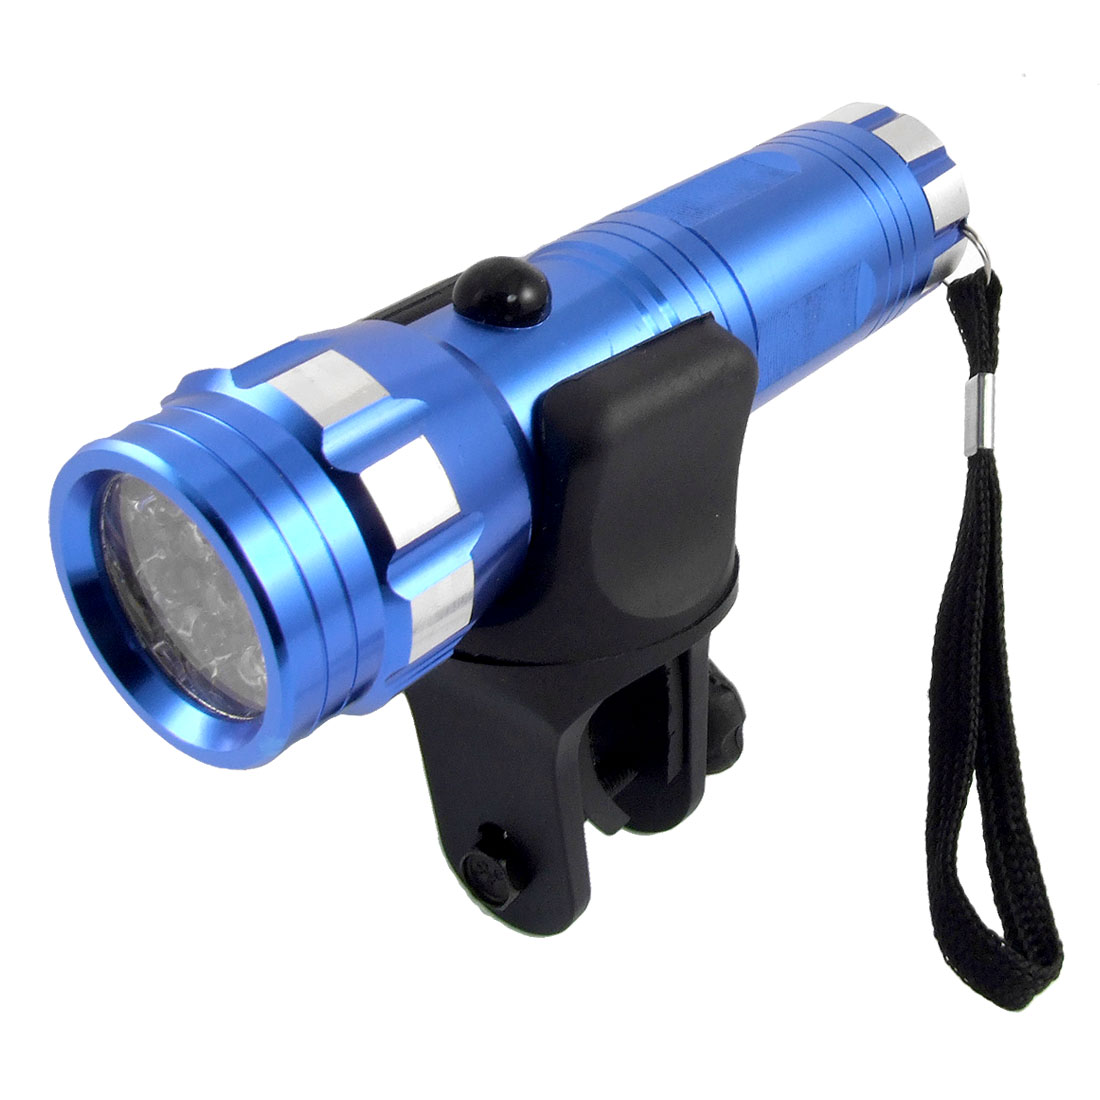 Bicycle Bike 14 White LED Bulb Flashlight Blue Torch Headlight